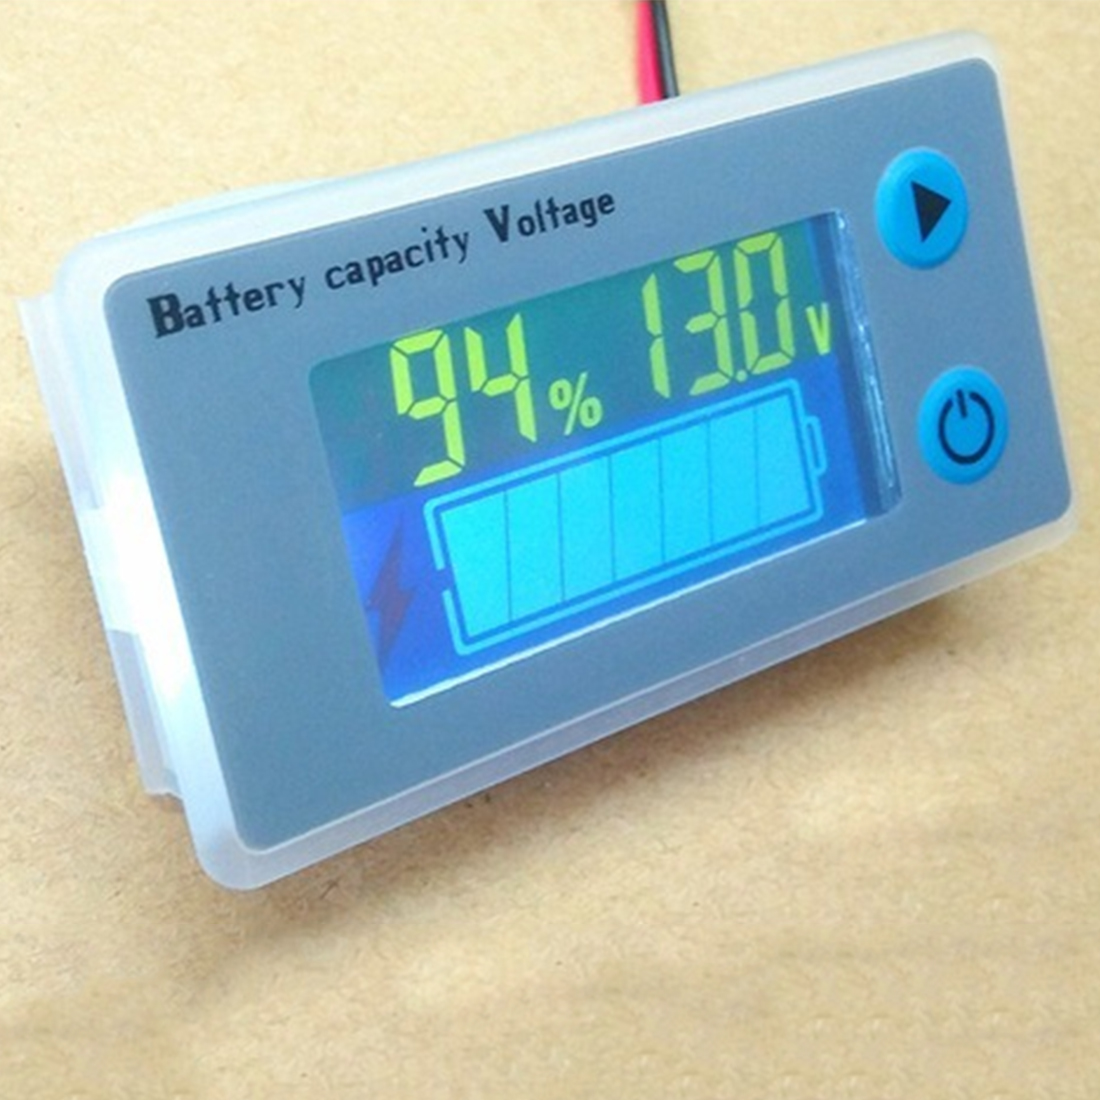 Digital Voltmeter Voltage Tester Monitor Universal LCD Car Acid Lead Lithium Battery Capacity Indicator JS-C33 10-100V